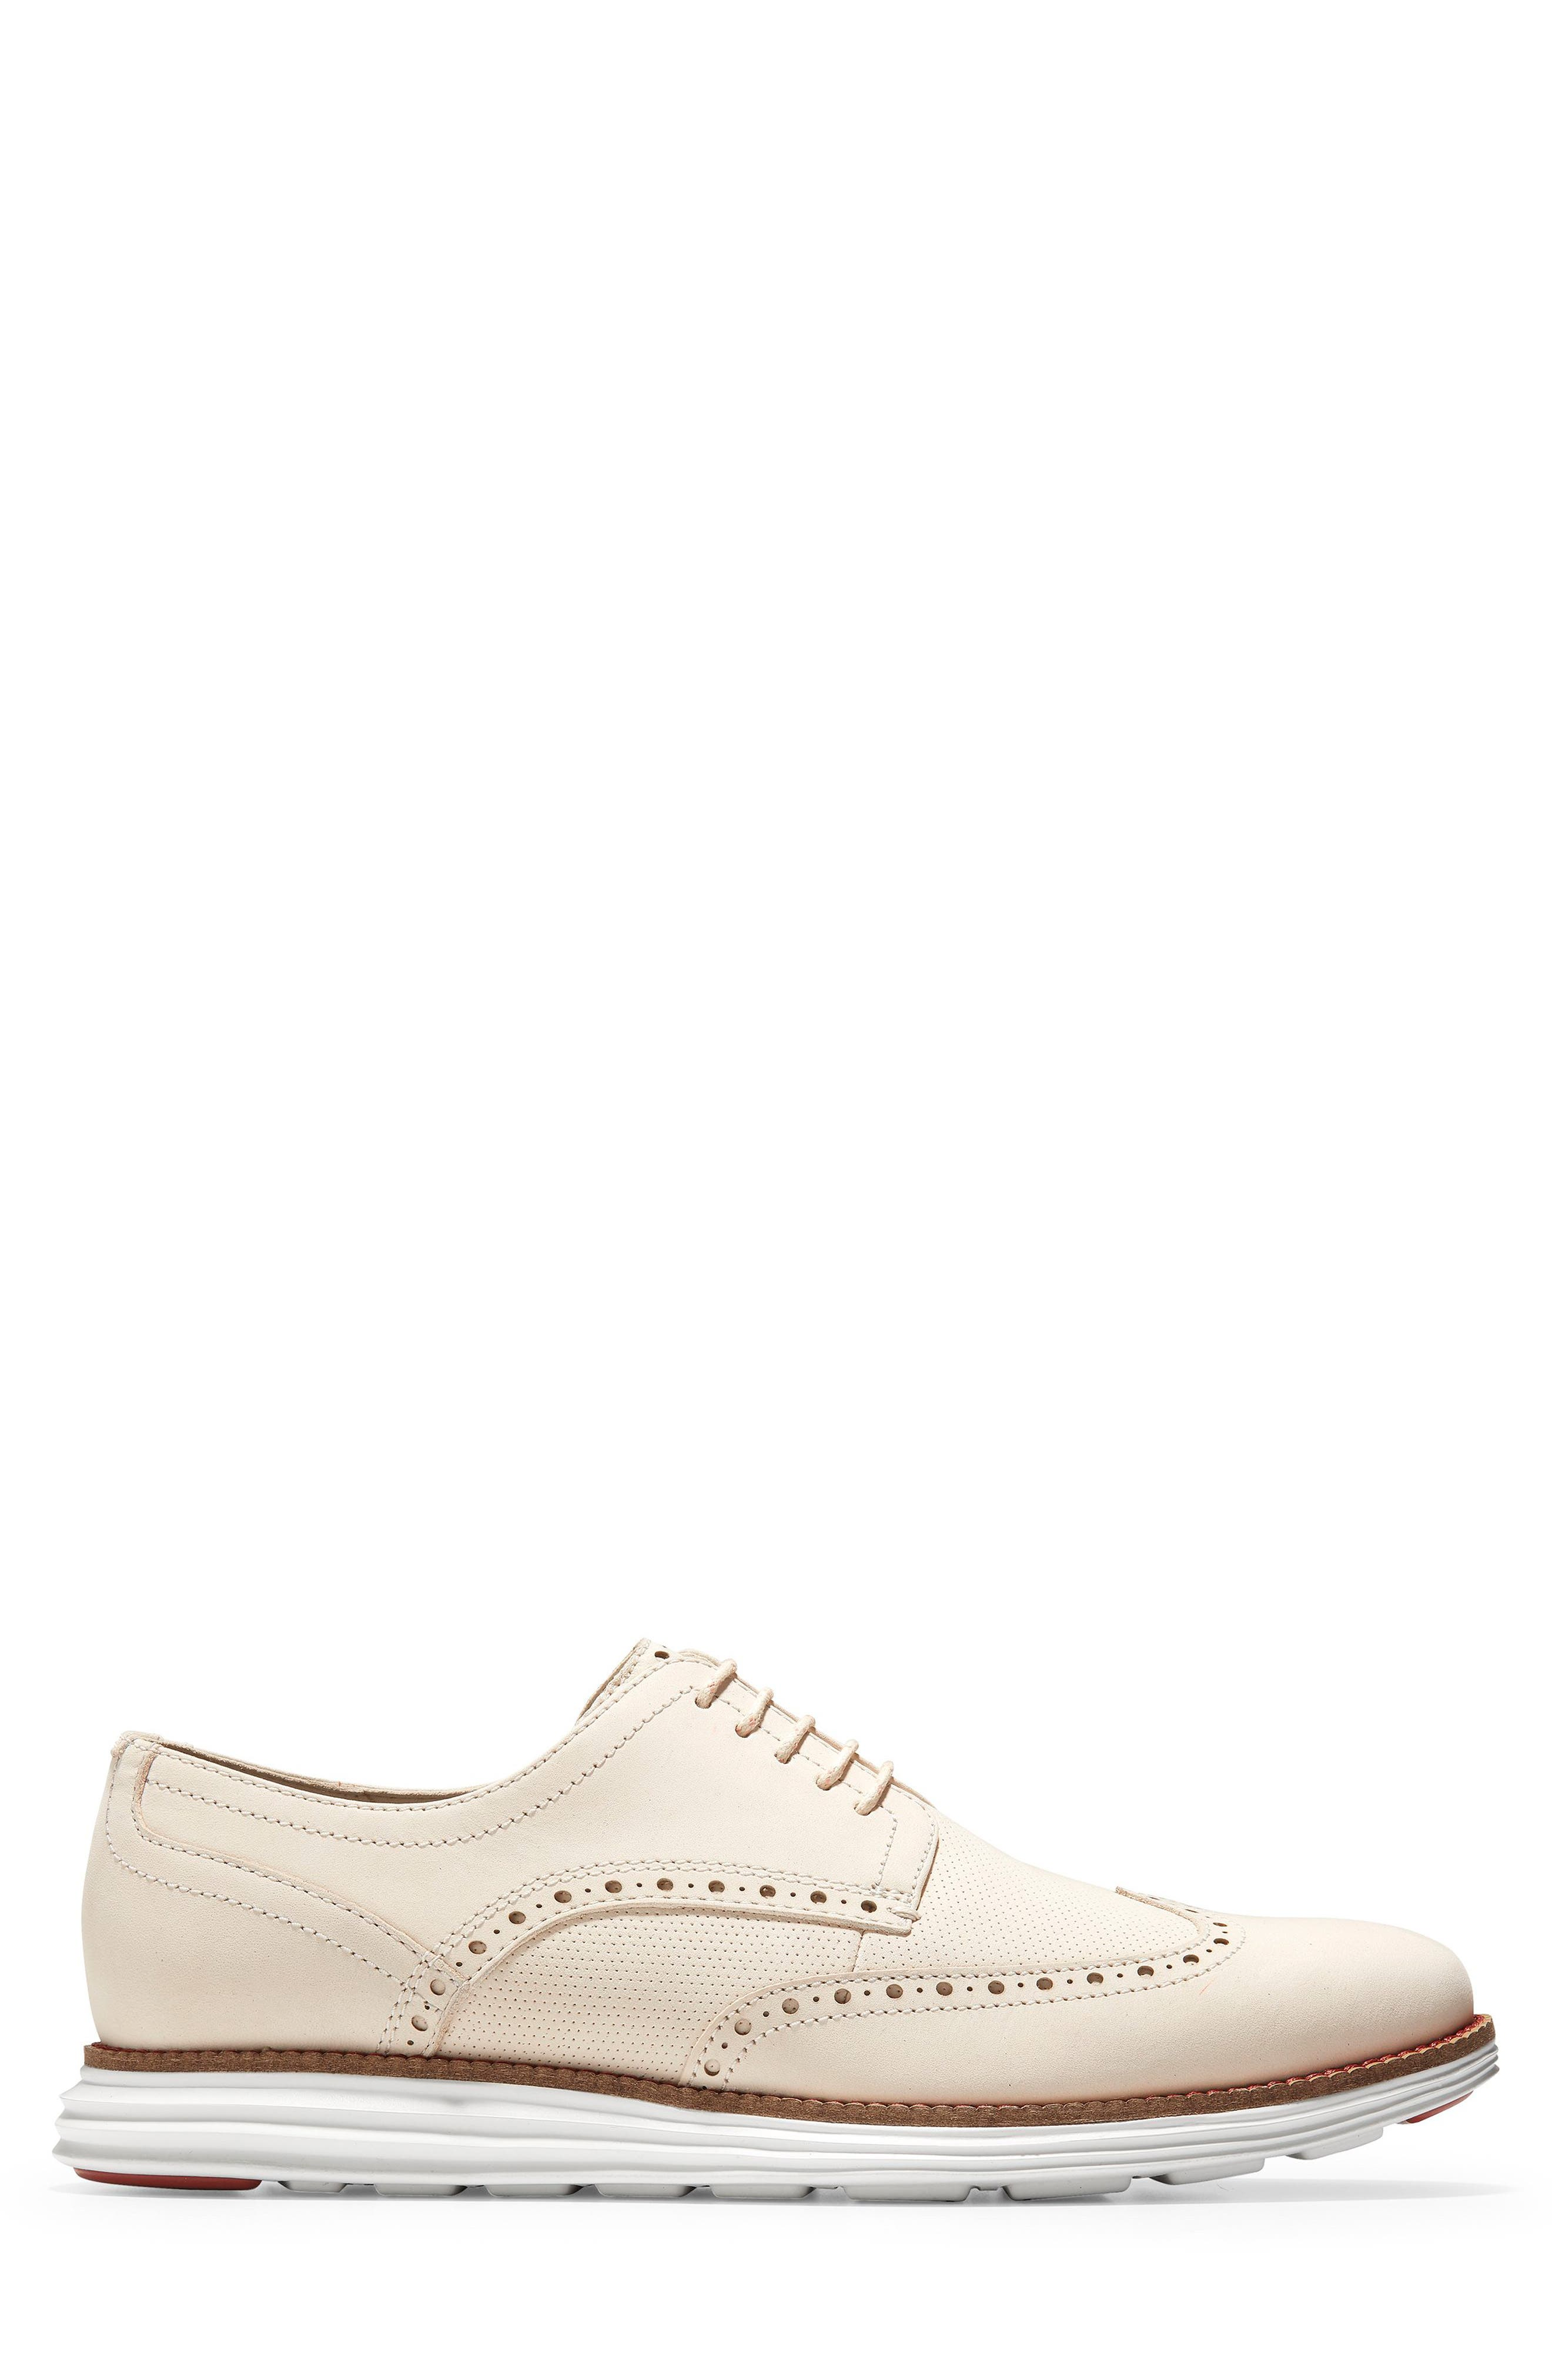 COLE HAAN, Original Grand Wingtip, Alternate thumbnail 3, color, SAND/ OPTIC WHITE NUBUCK